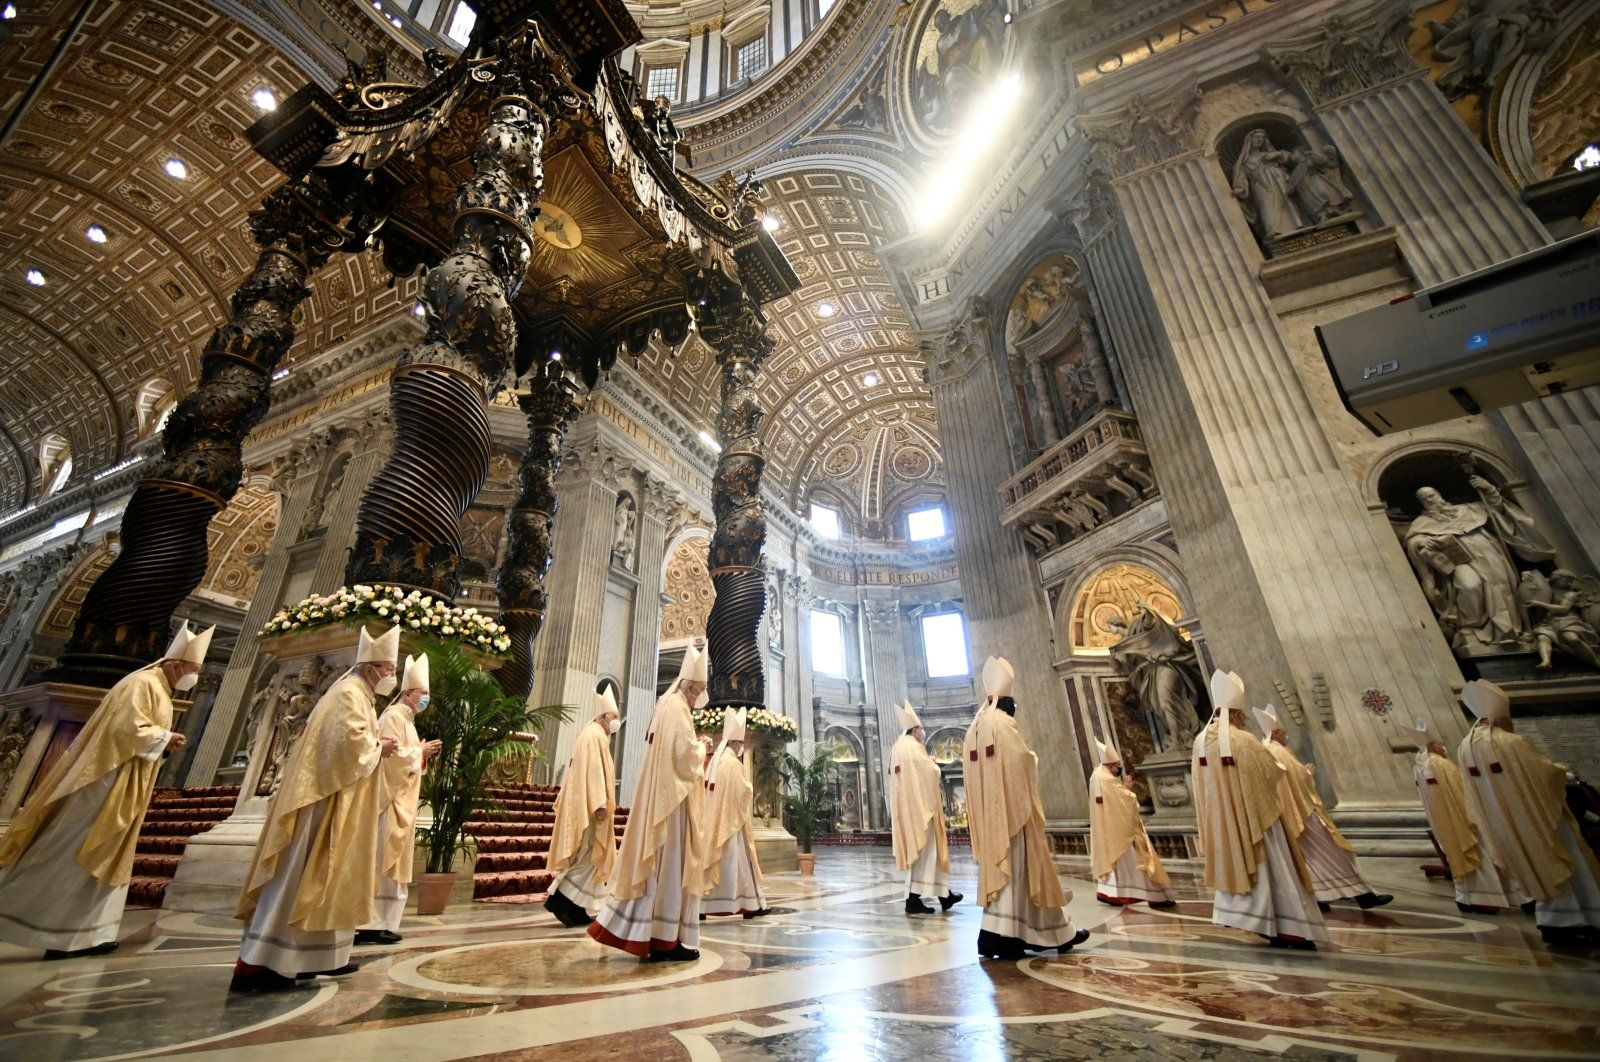 Cardinals and bishops arrive at Pope Francis' Easter Mass at St. Peter's Basilica at the Vatican, Vatican City, April 4, 2021. (Reuters Photo)